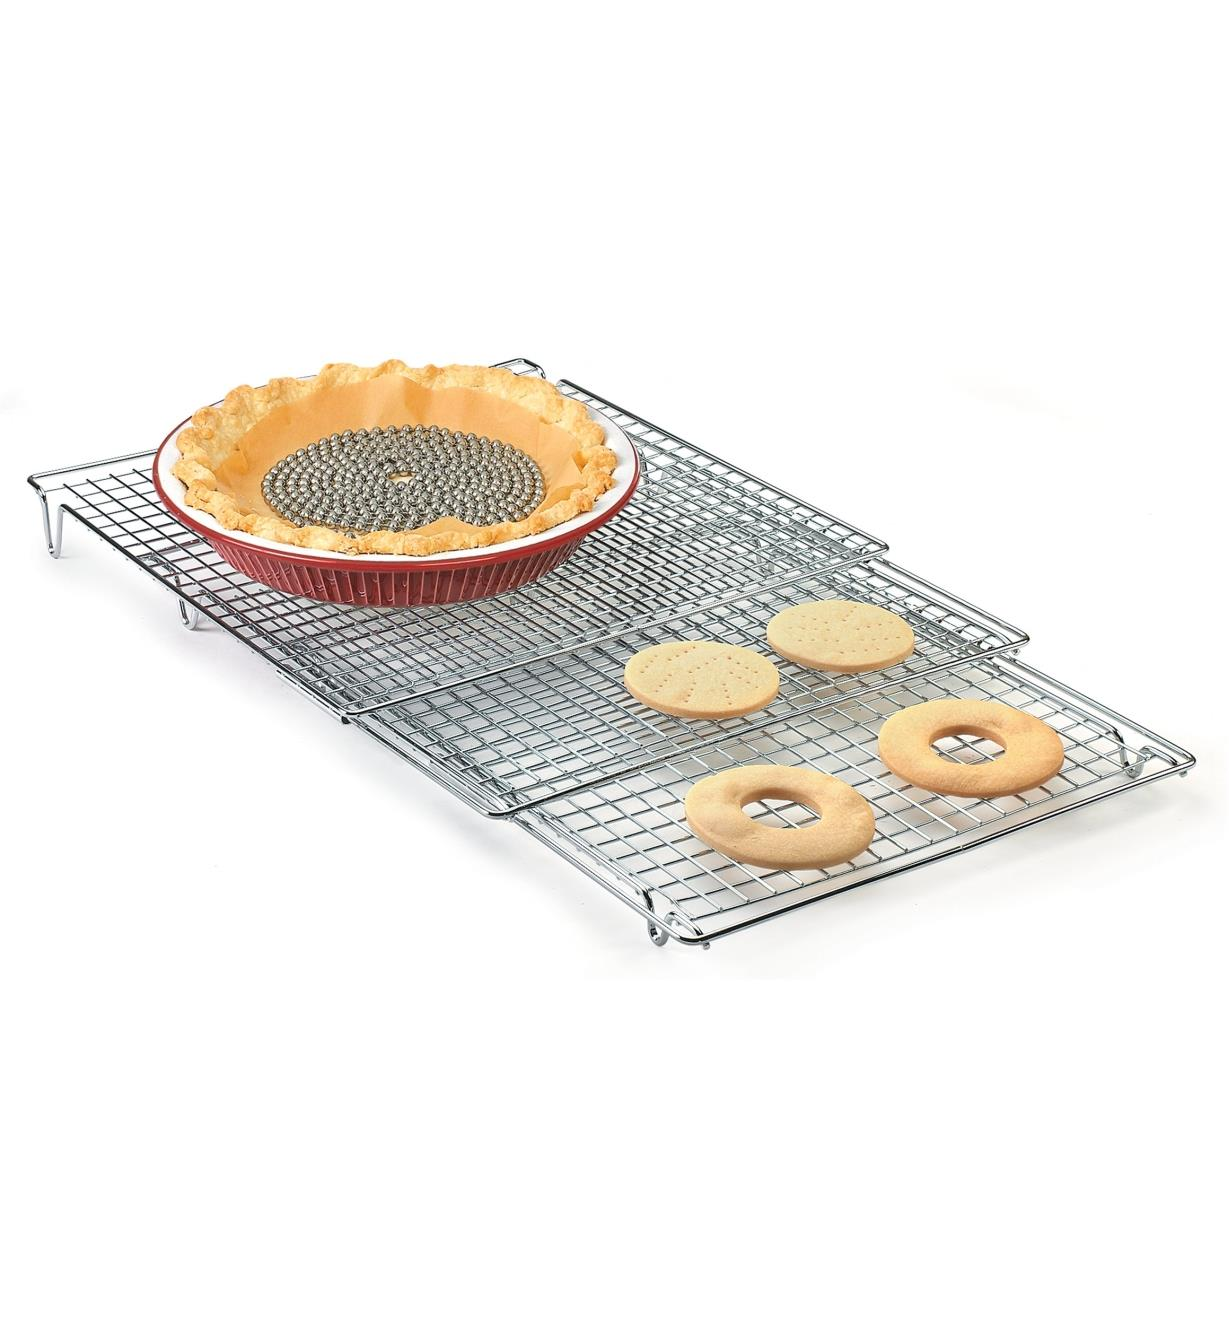 A pie crust and cookies cooling on an Expandable Cooling Rack